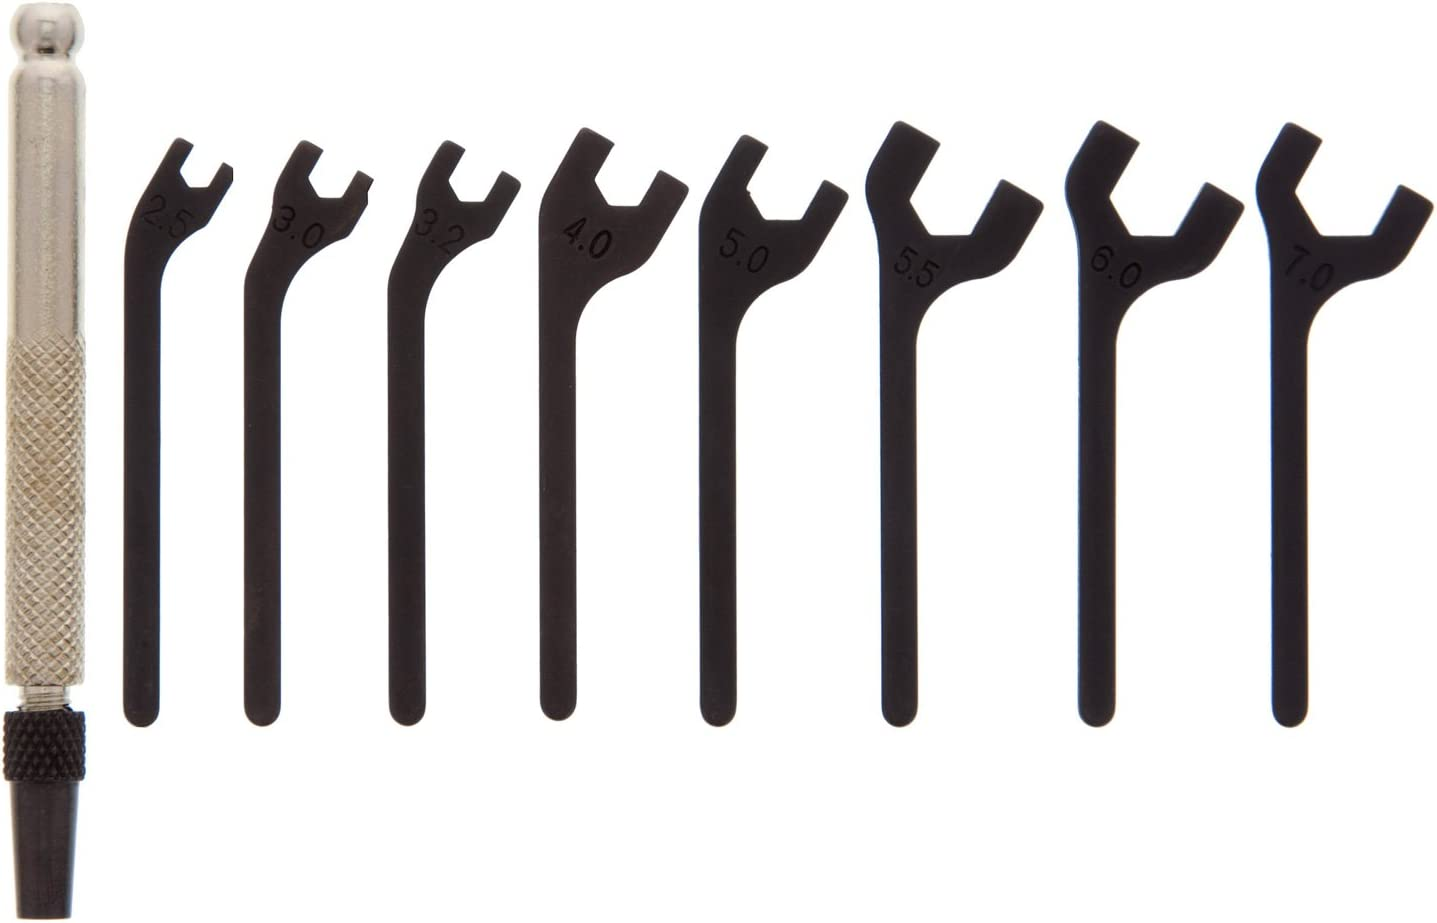 Moody Free shipping New Tools - 9 Pc. Interchangeable Open End Seasonal Wrap Introduction Set; Metric Wrench